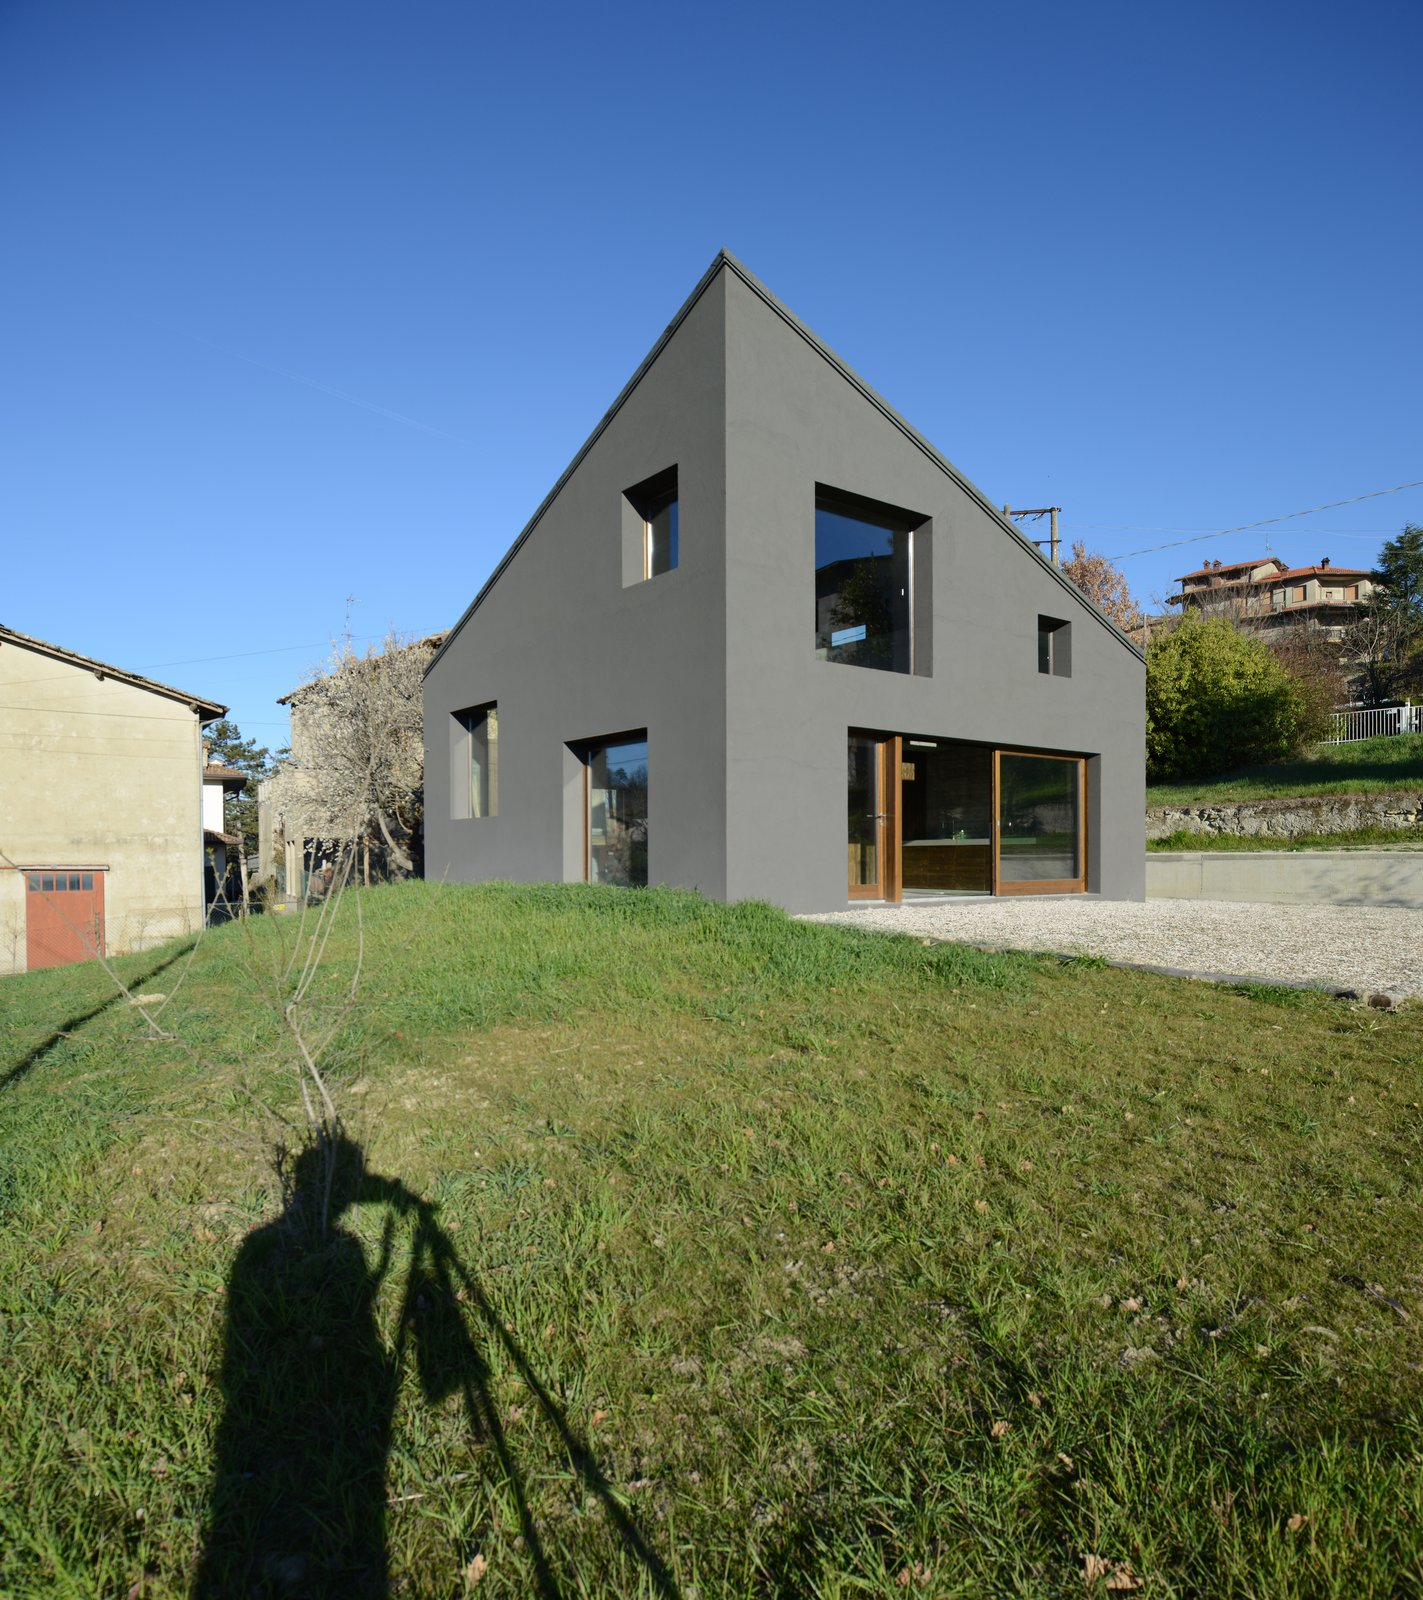 Exterior, House Building Type, and Concrete Siding Material  Photo 11 of 11 in A Concrete Hideaway in the Italian Countryside